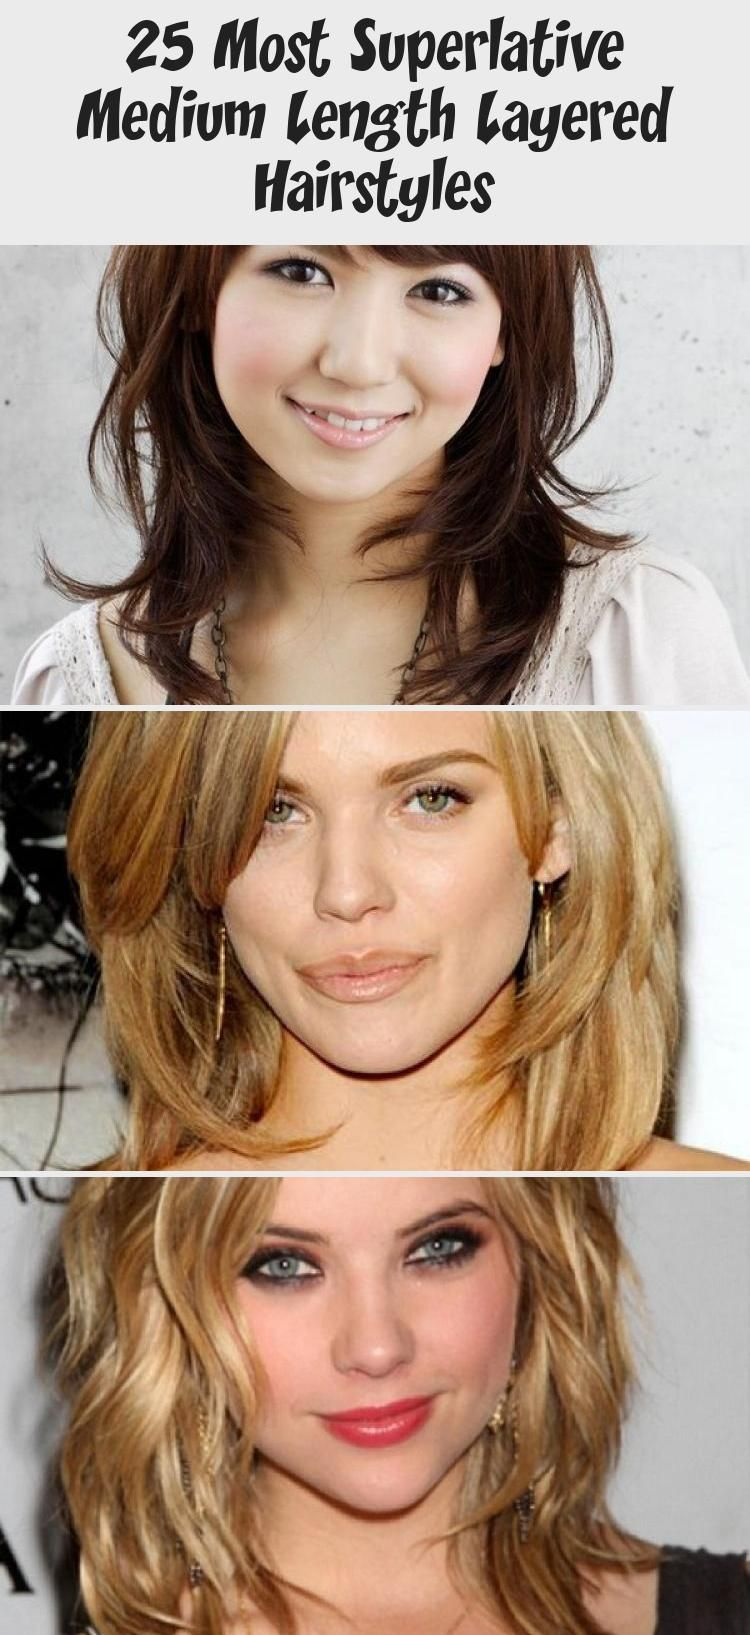 25 Most Superlative Medium Length Layered Hairstyles - Hair Styles - Every  woma...#hair #hairstyles #l… in 2020 | Medium length hair with layers, Layered  hair, Hair styles